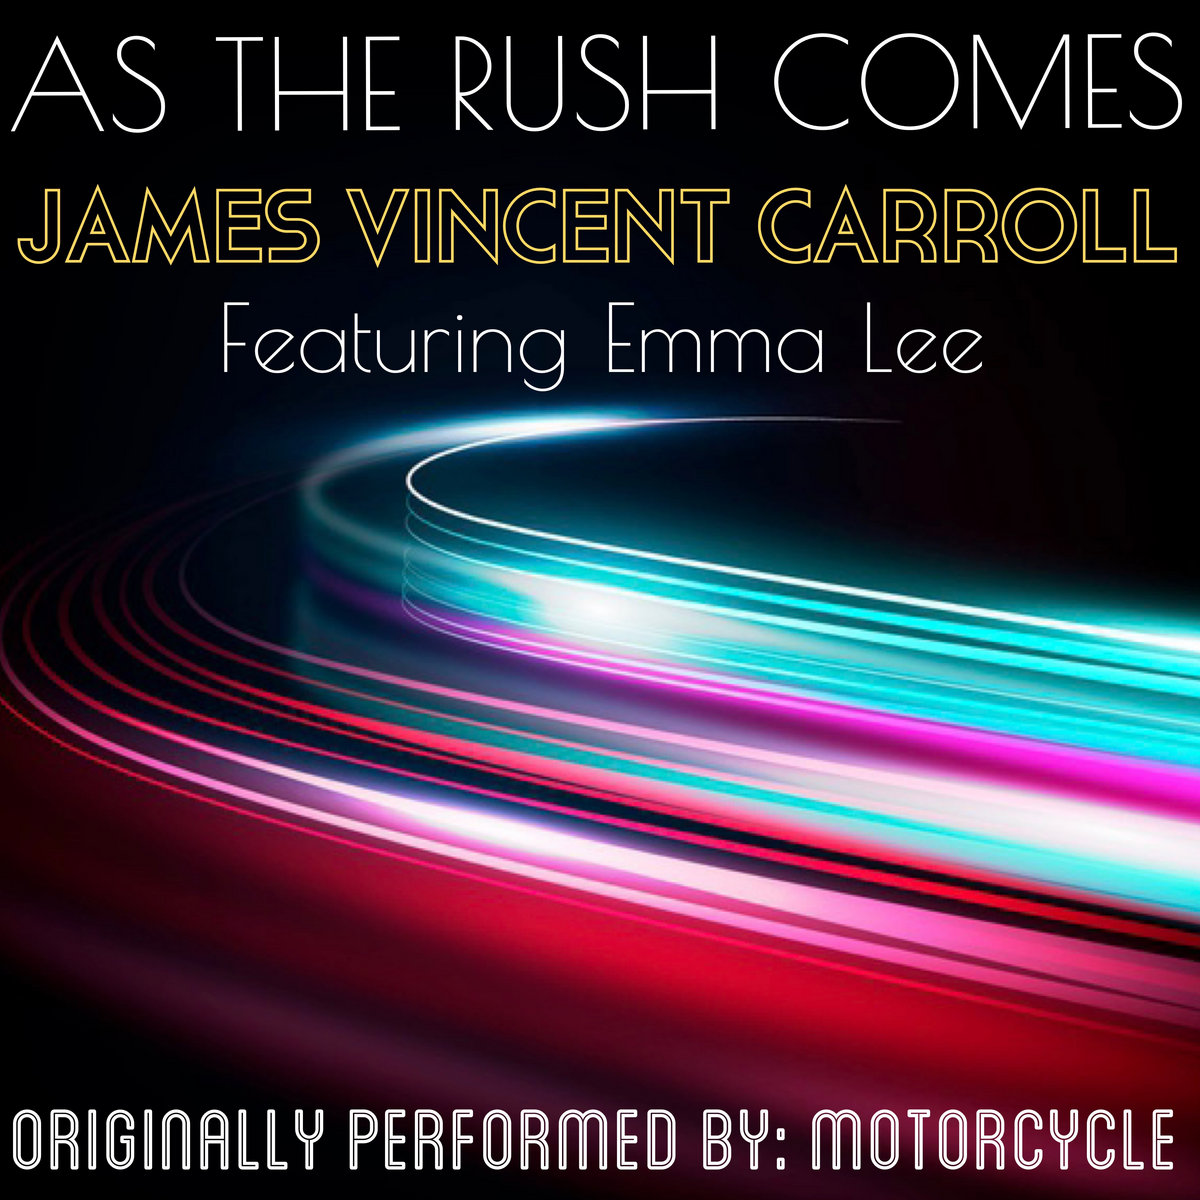 As The Rush Comes (Originally Written and Recorded By: Motorcycle) by James Vincent Carroll